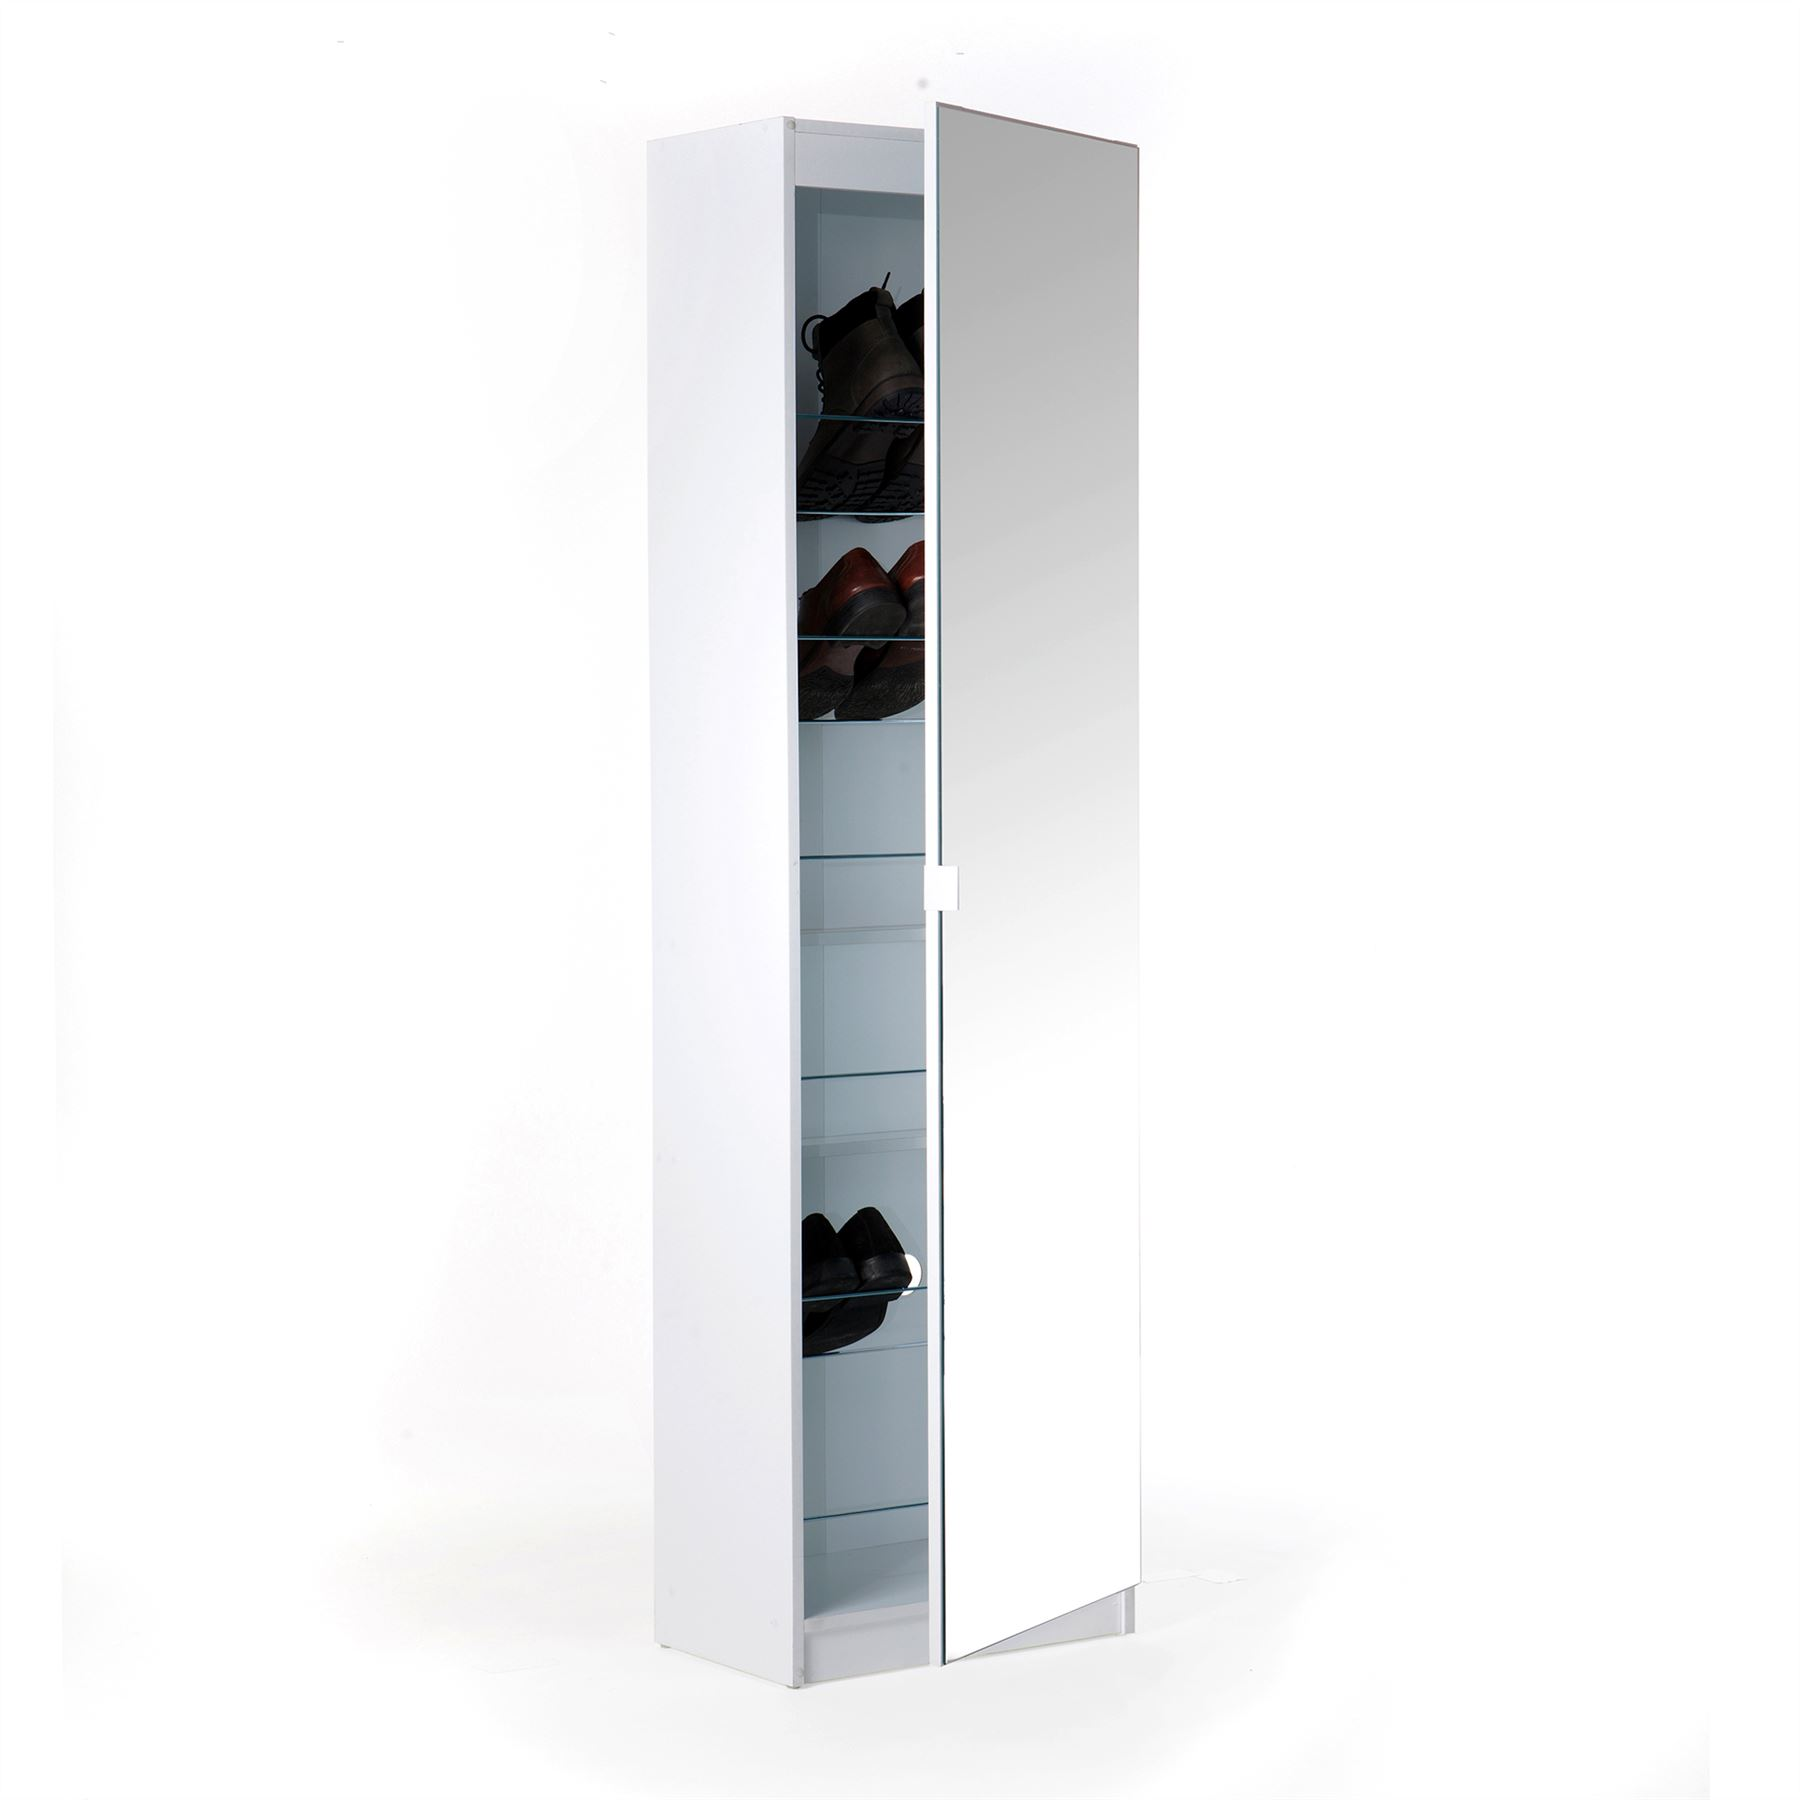 TALL MIRRORED 6 TIER FULL LENGTH SHOE CABINET RACK CUPBOARD STAND STORAGE WHITE